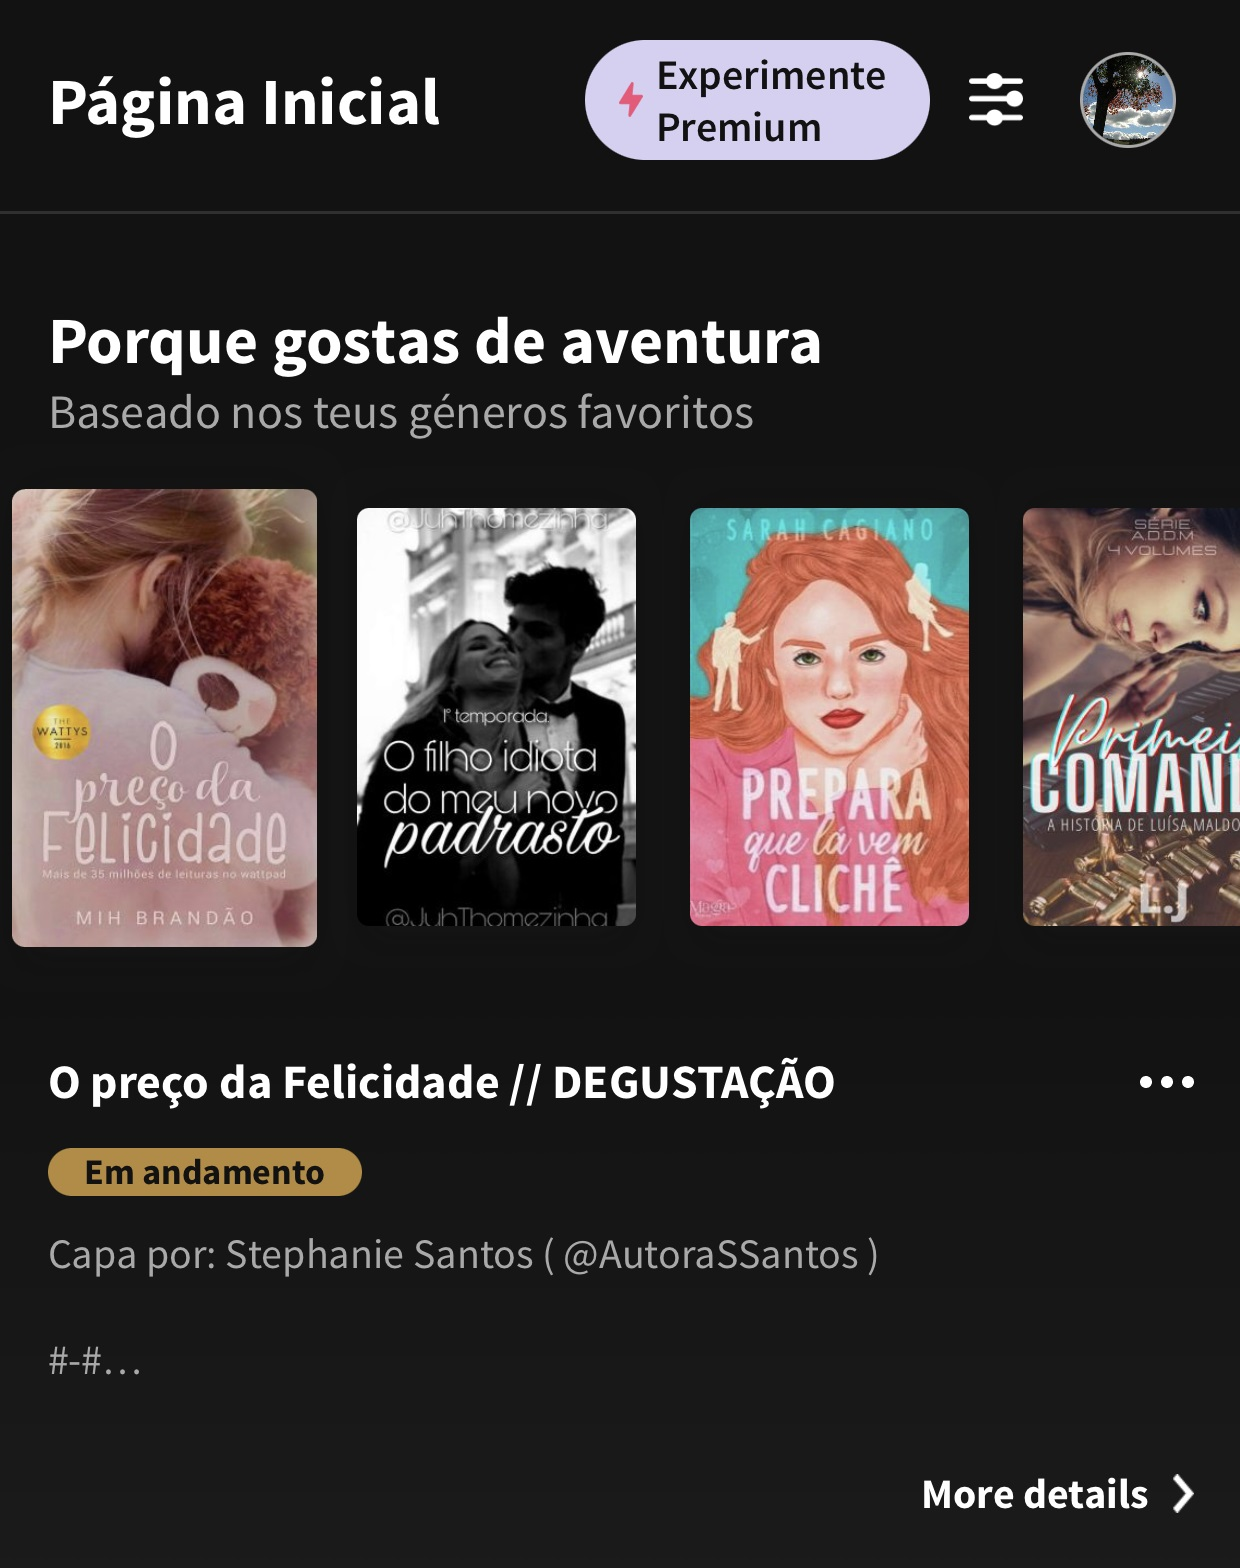 Wattpad's main page will show titles according to your taste